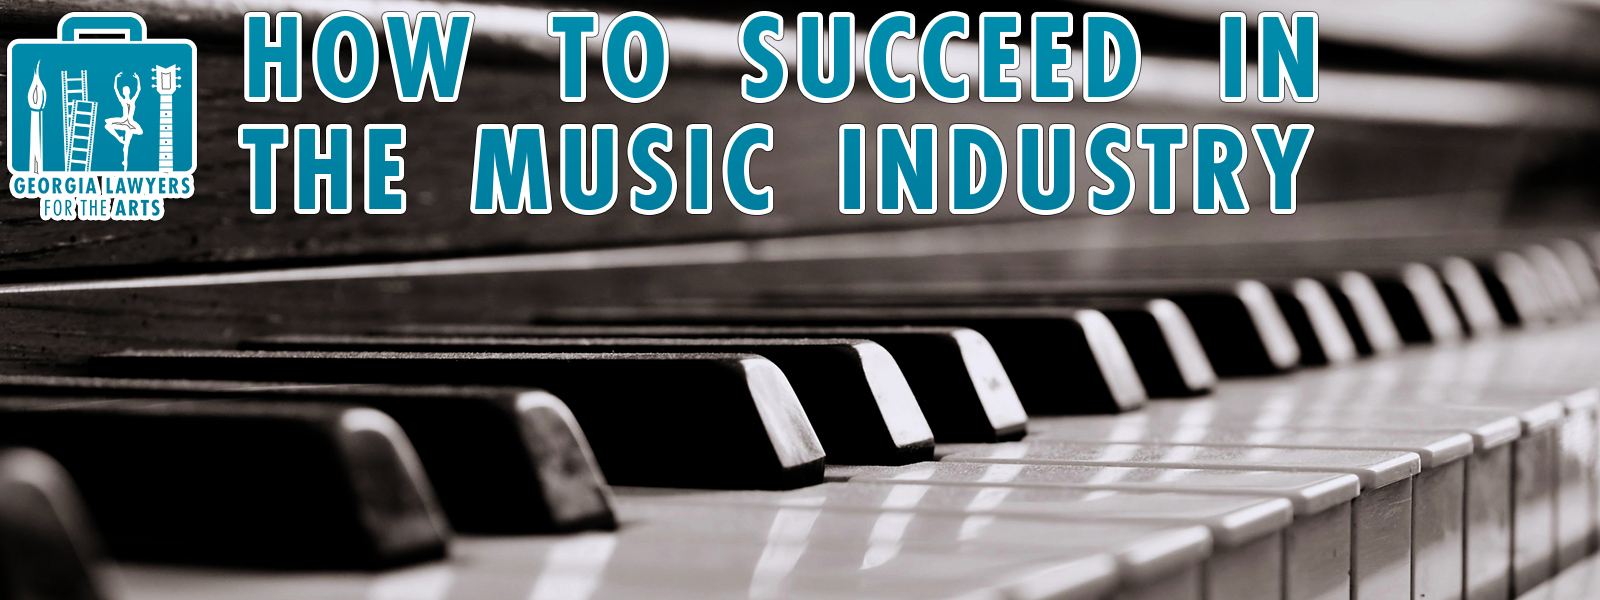 How to Succeed in the Music Industry